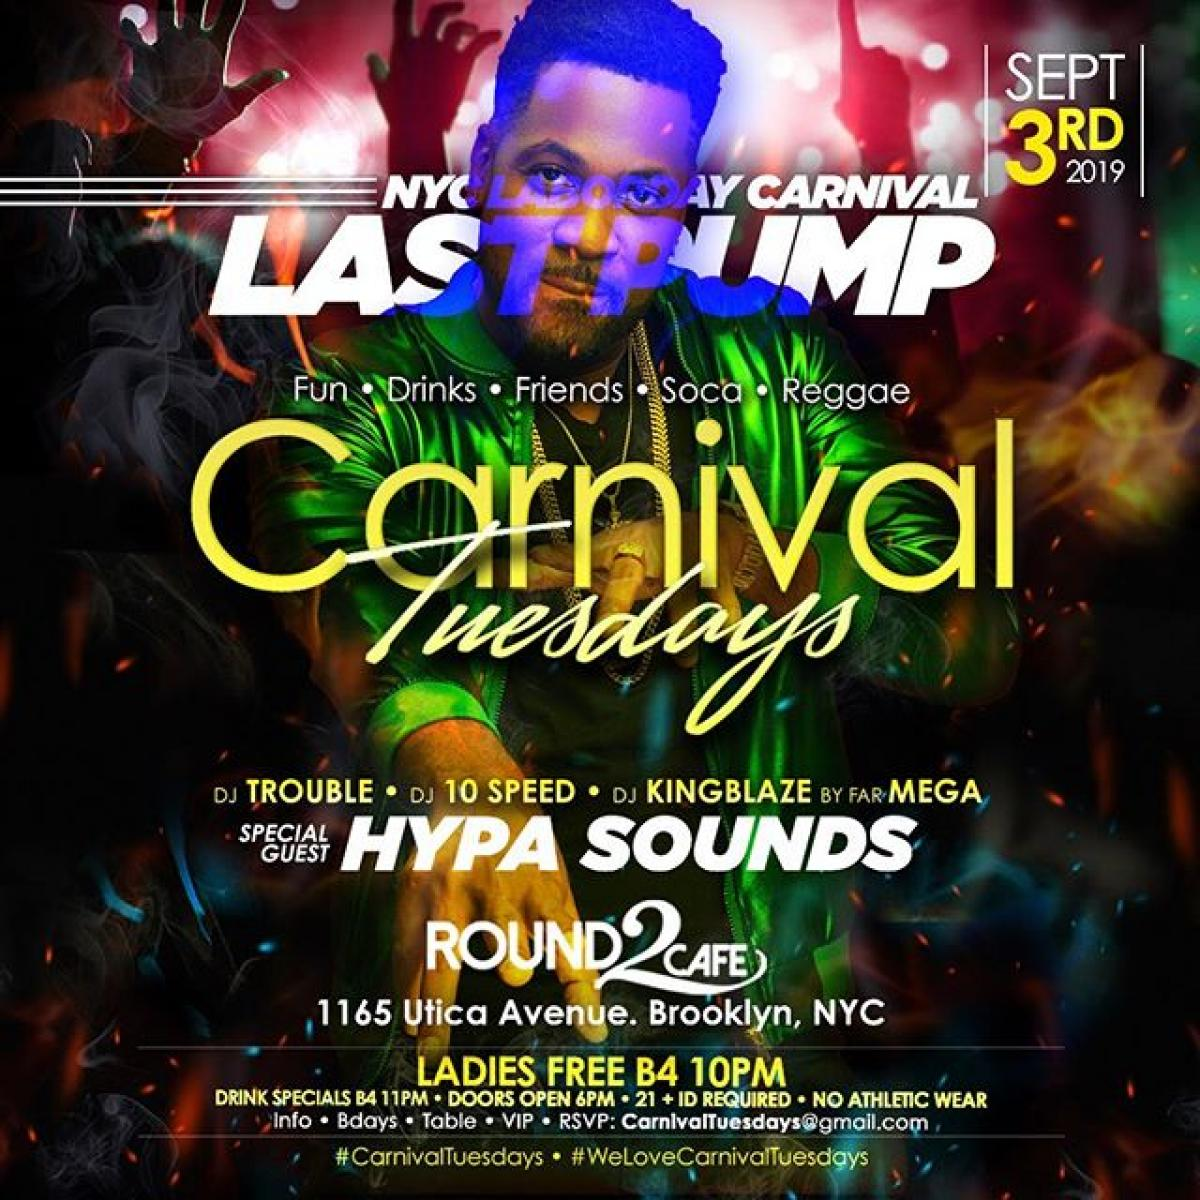 Carnival Tuesdays - Last Pump flyer or graphic.